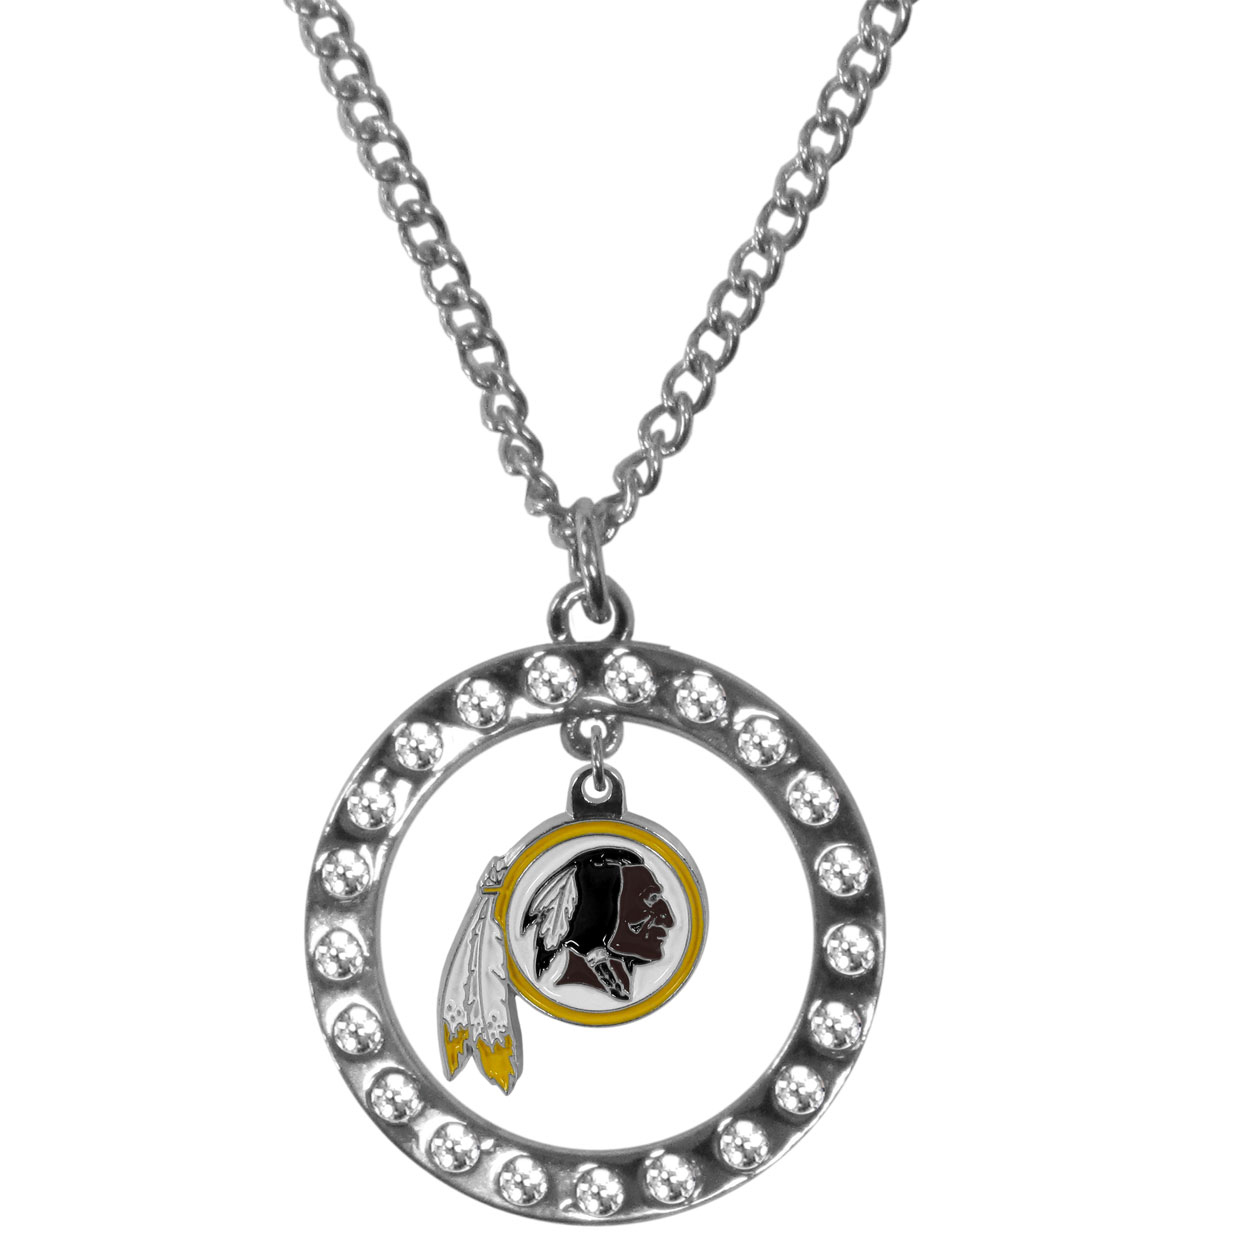 Washington Redskins Rhinestone Hoop Necklaces - Our Washington Redskins rhinestone hoop necklace comes on an 18 inch chain and features a hoop covered in rhinestones with a high polish chrome finish and a cast and enameled team charm dangling in the center.